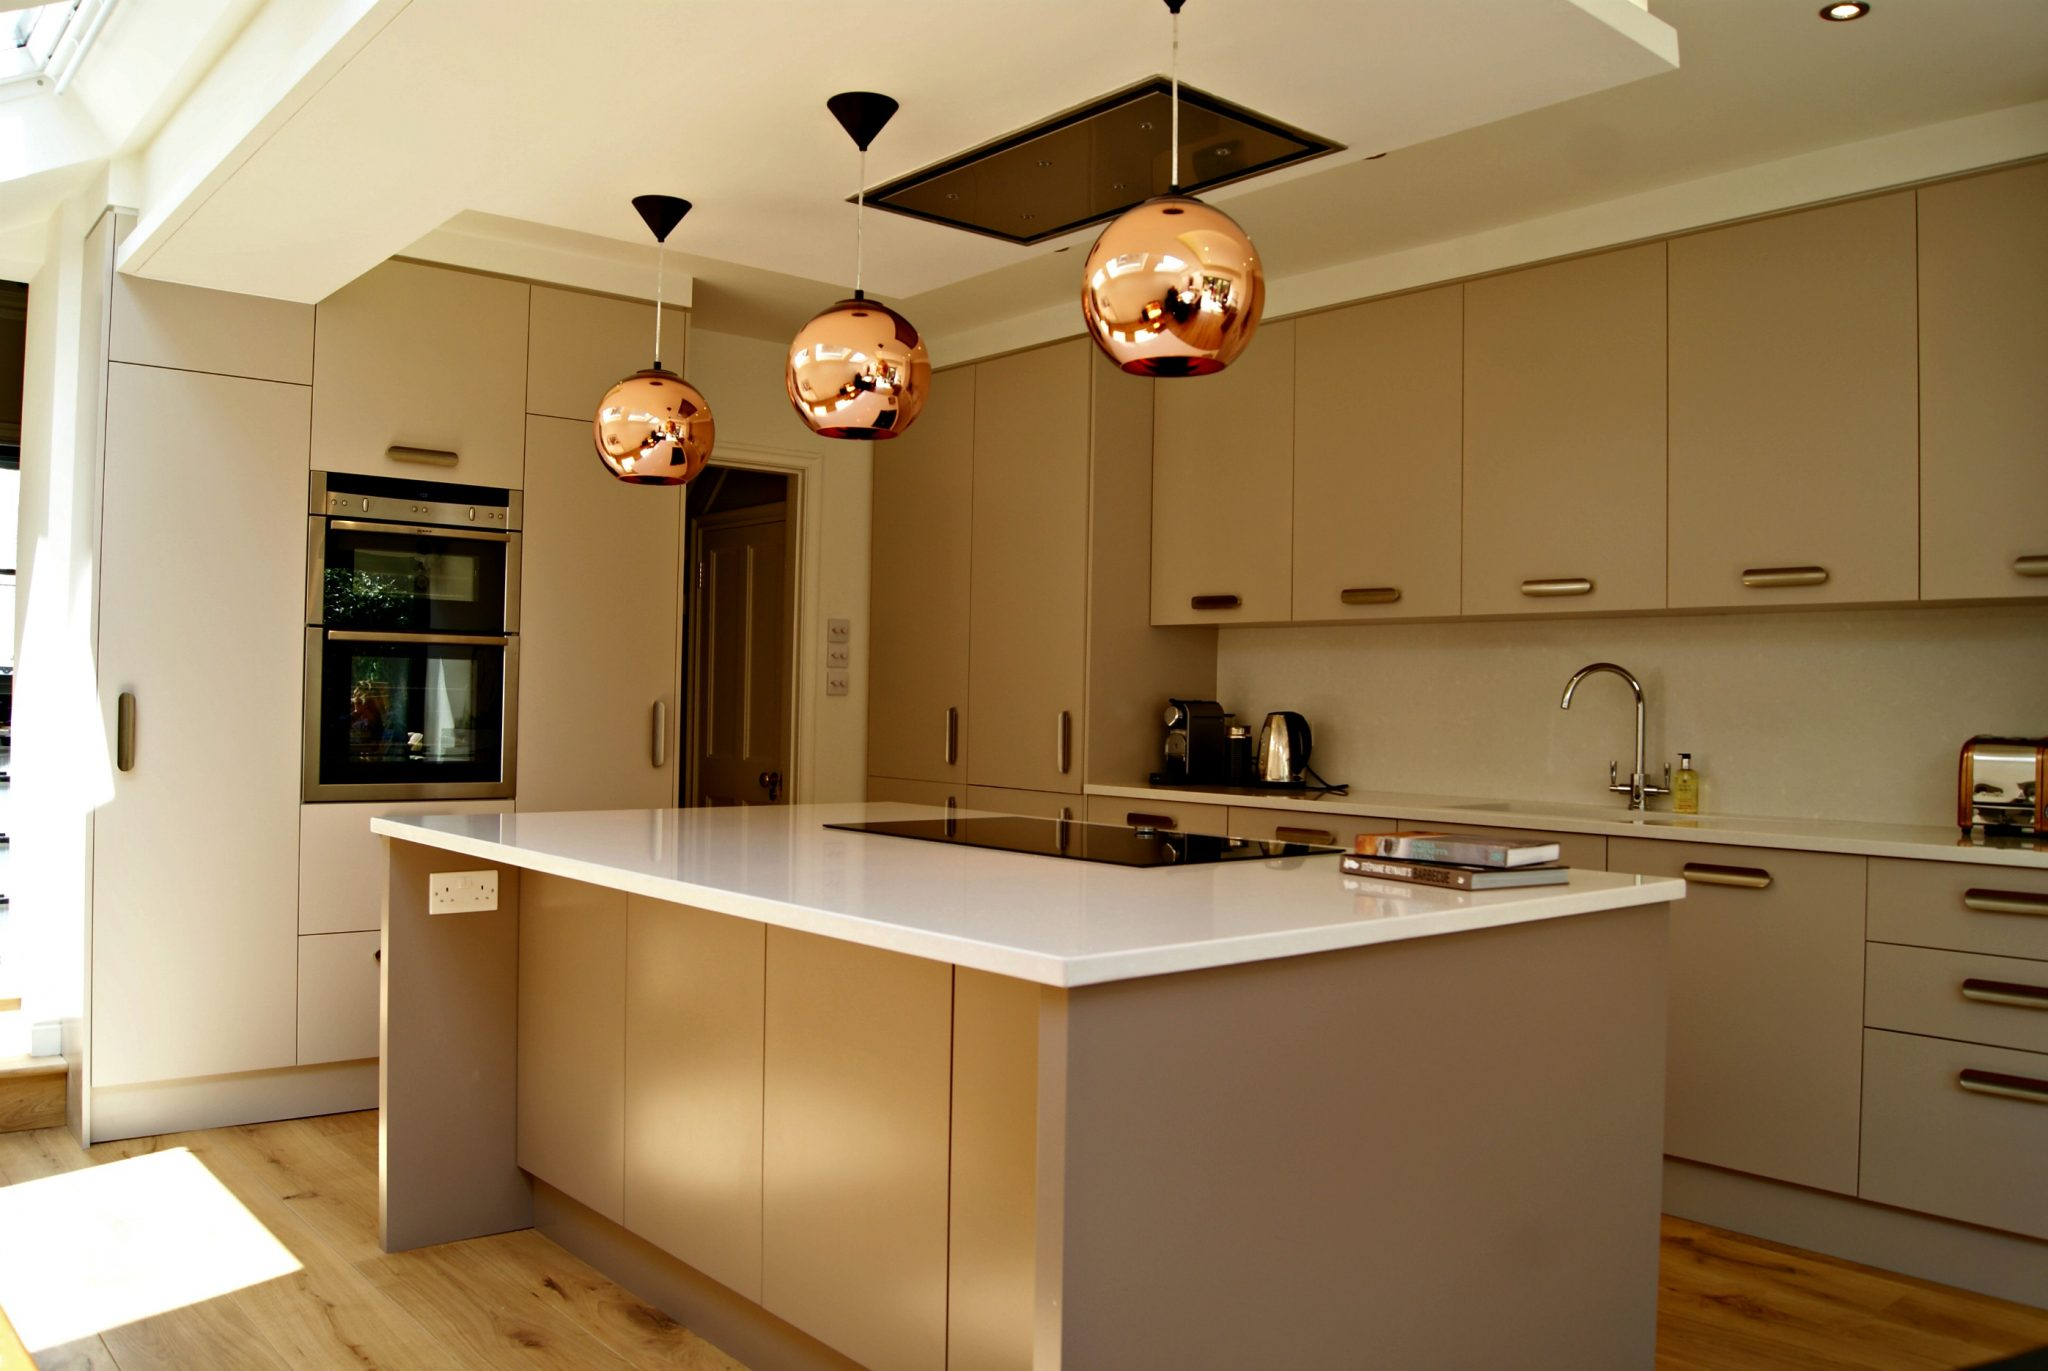 Cambria quartz worktops